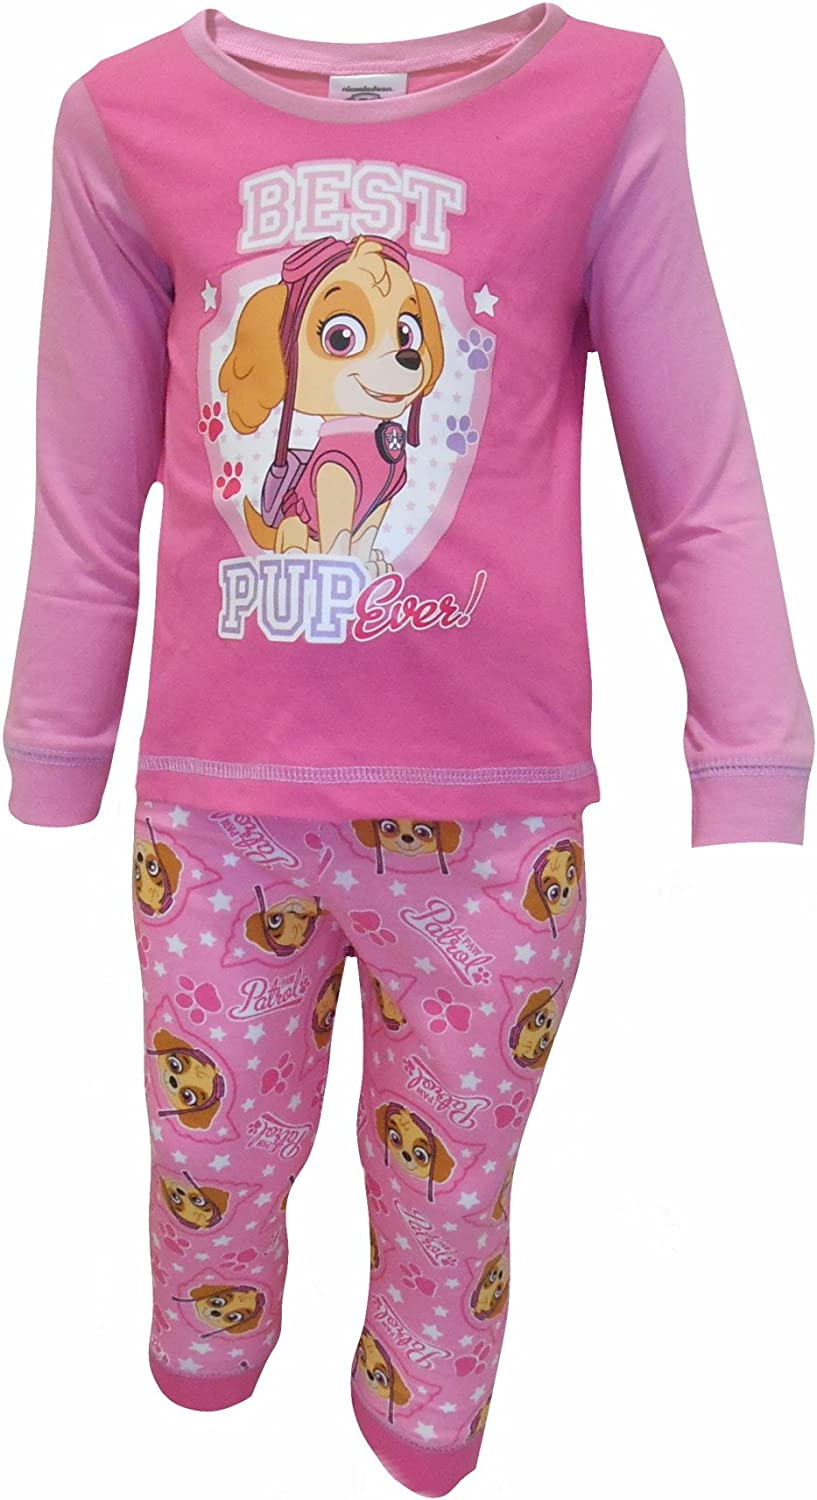 Next Peppa Pig Full Length Leggings Age 18-24 Months Up to 92cm